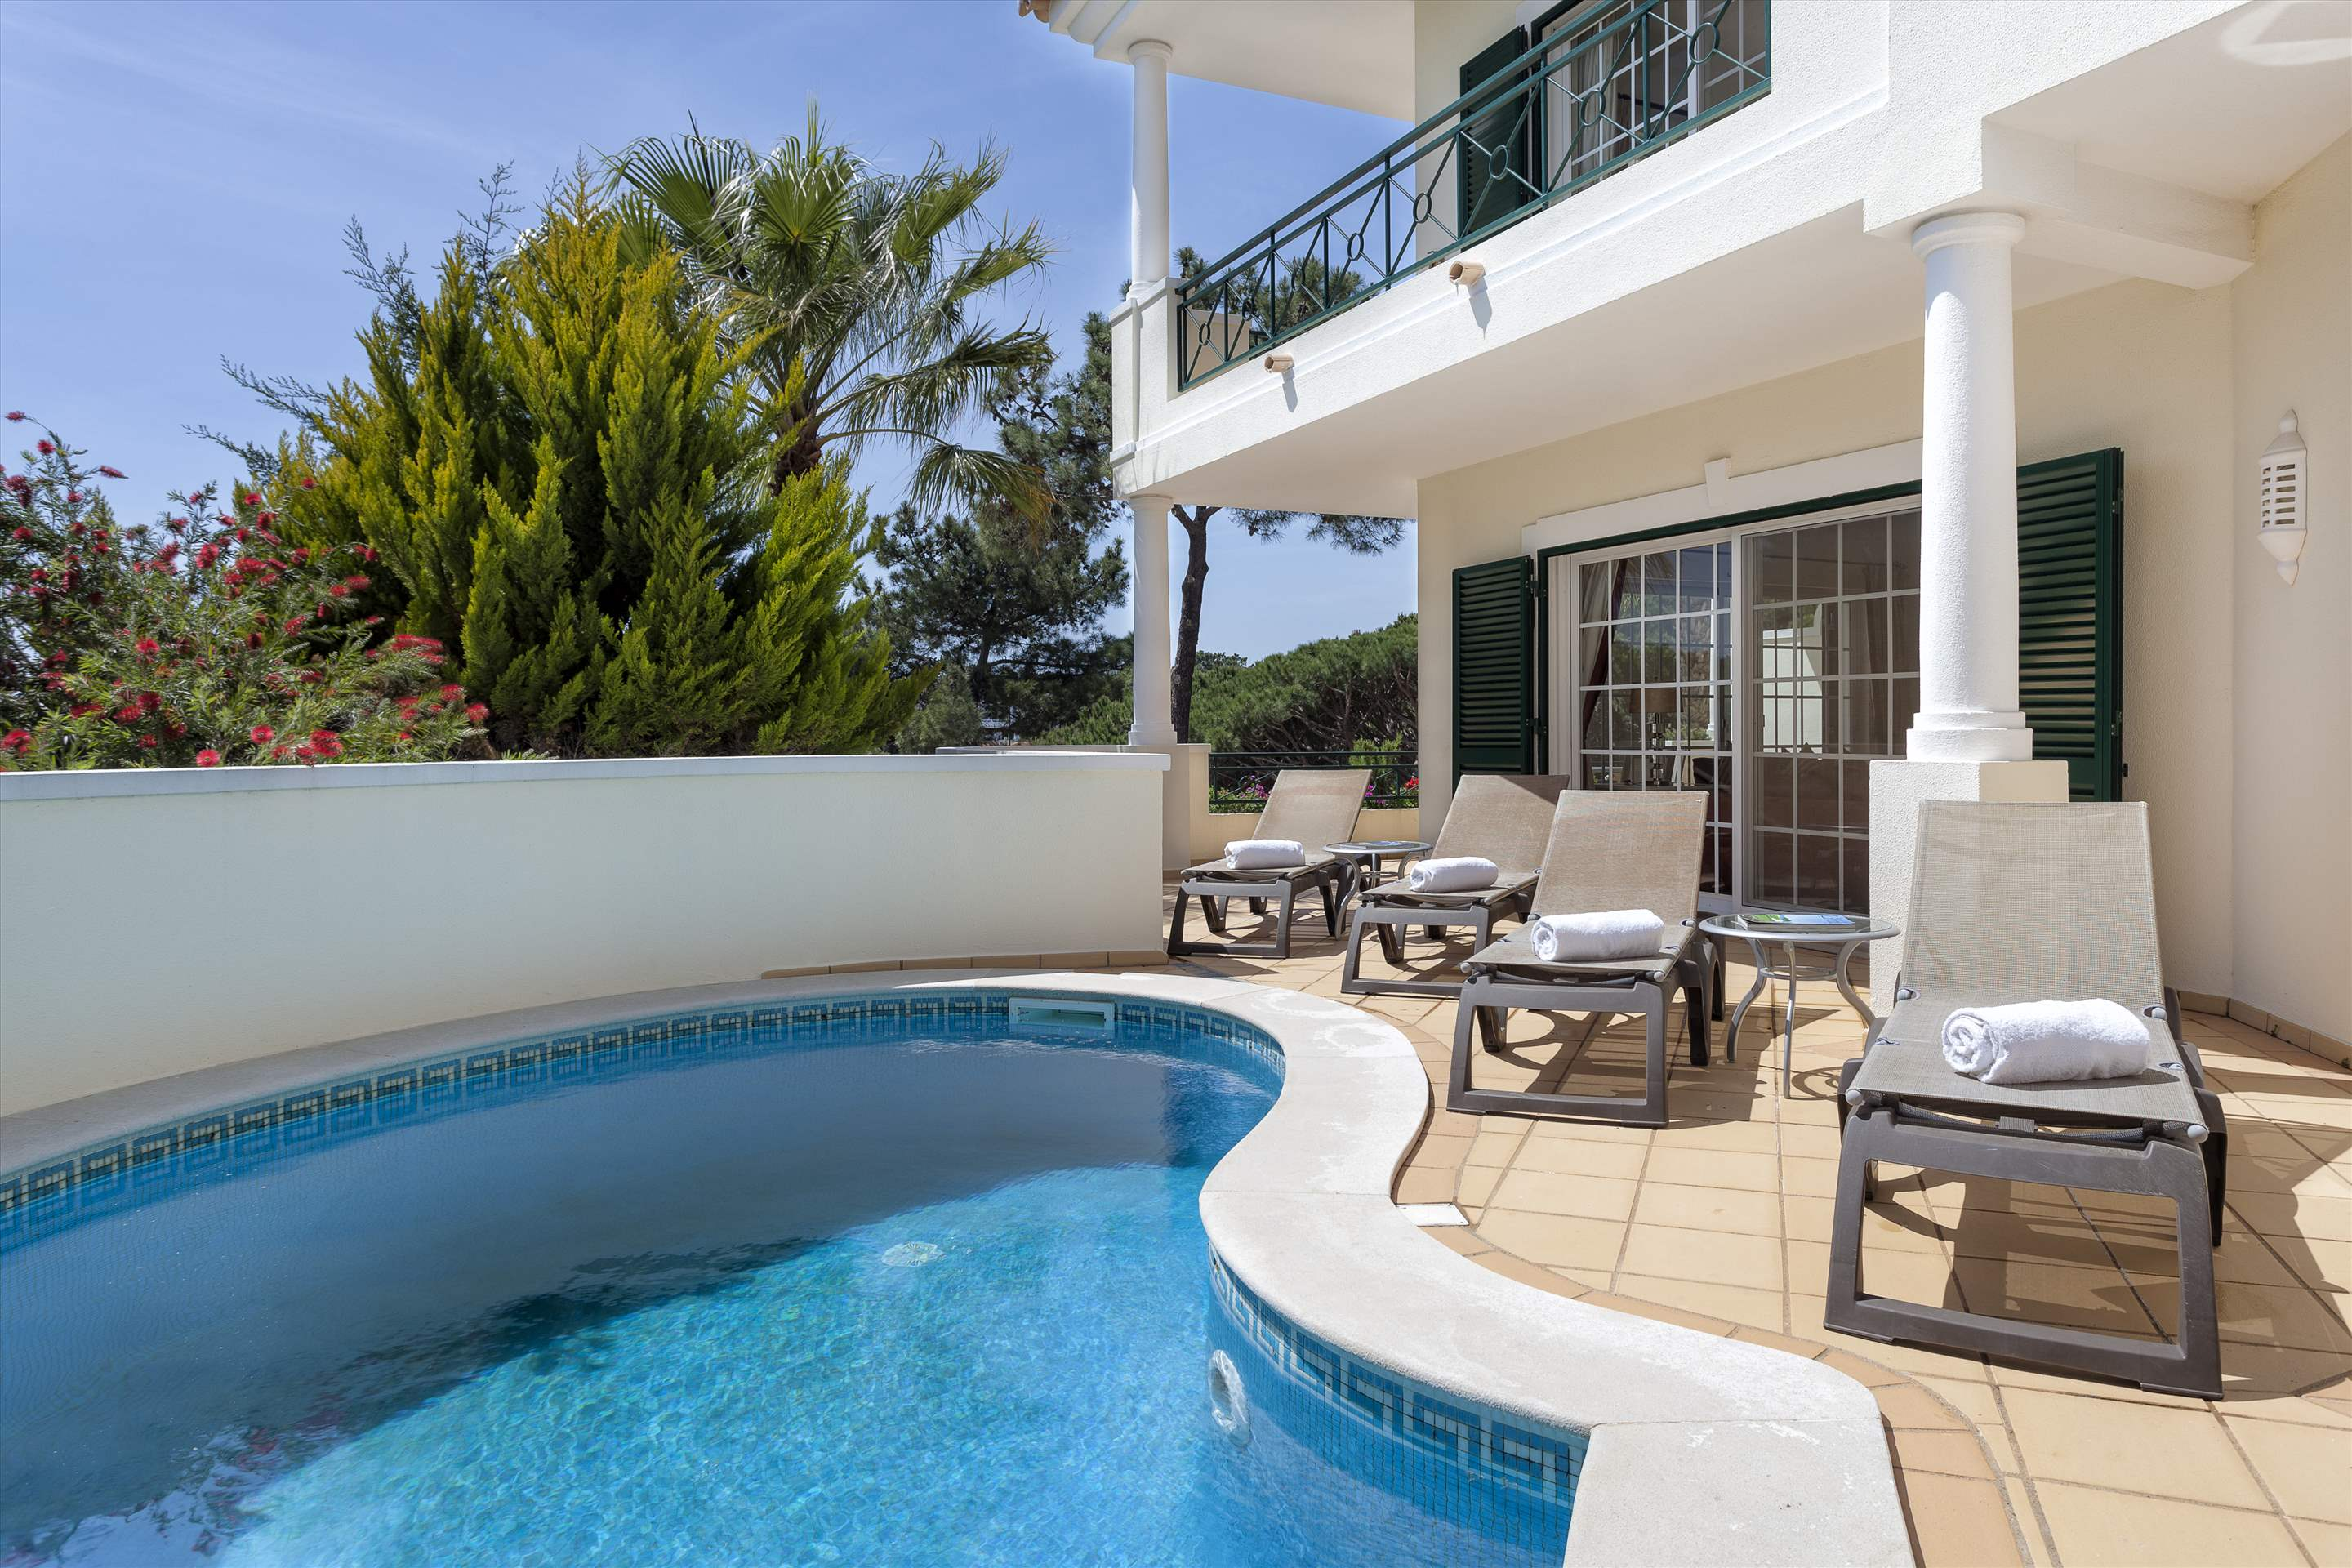 Apartment Romaine, 3 bedroom apartment in Vale do Lobo, Algarve